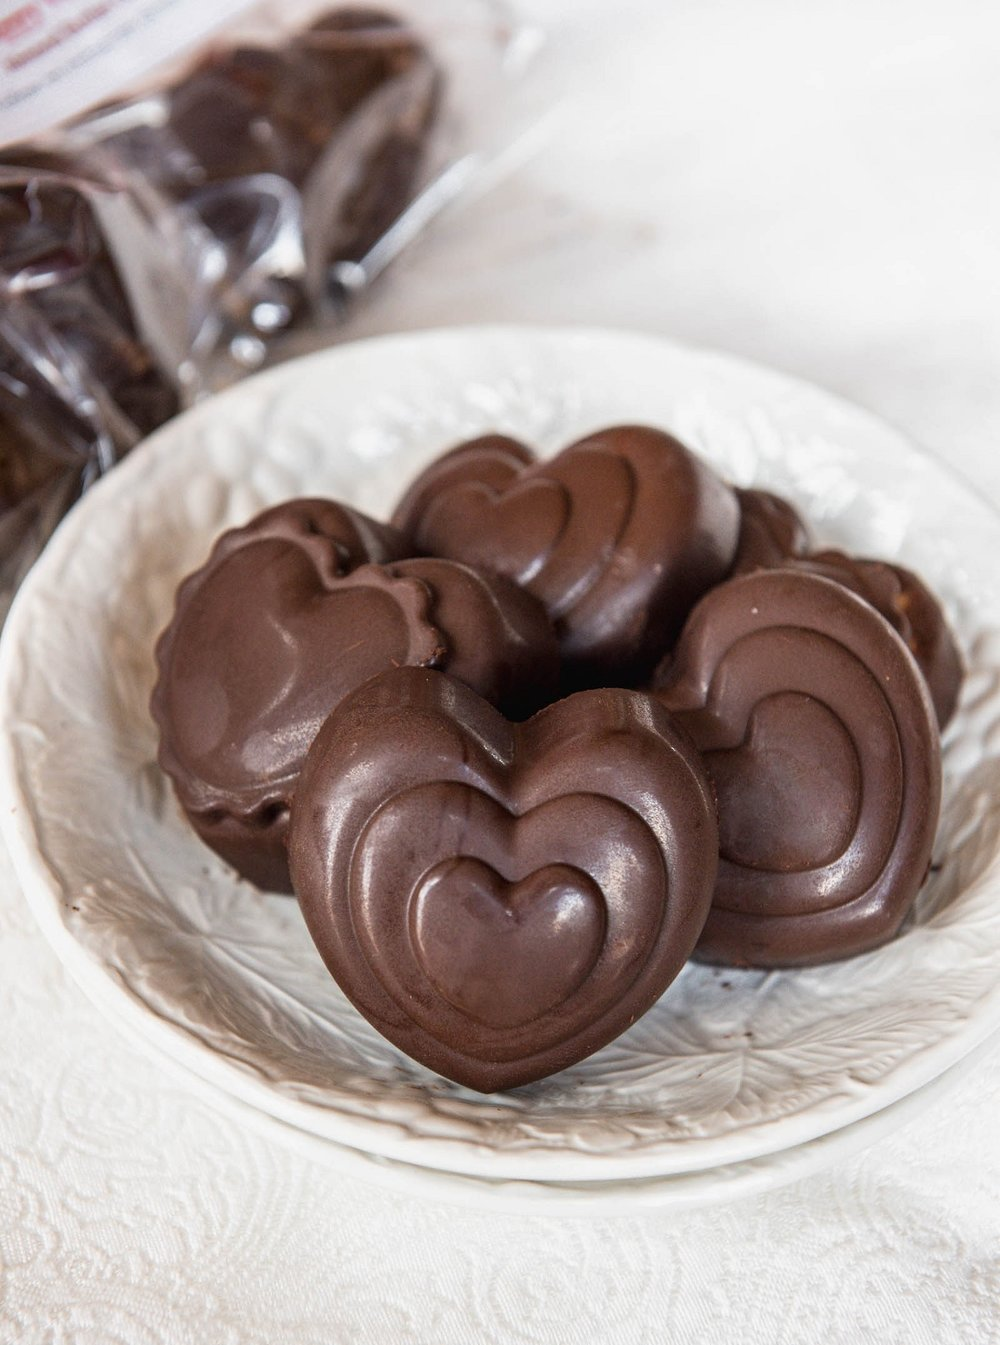 almond-butter-chocolate-cups-plated.jpg